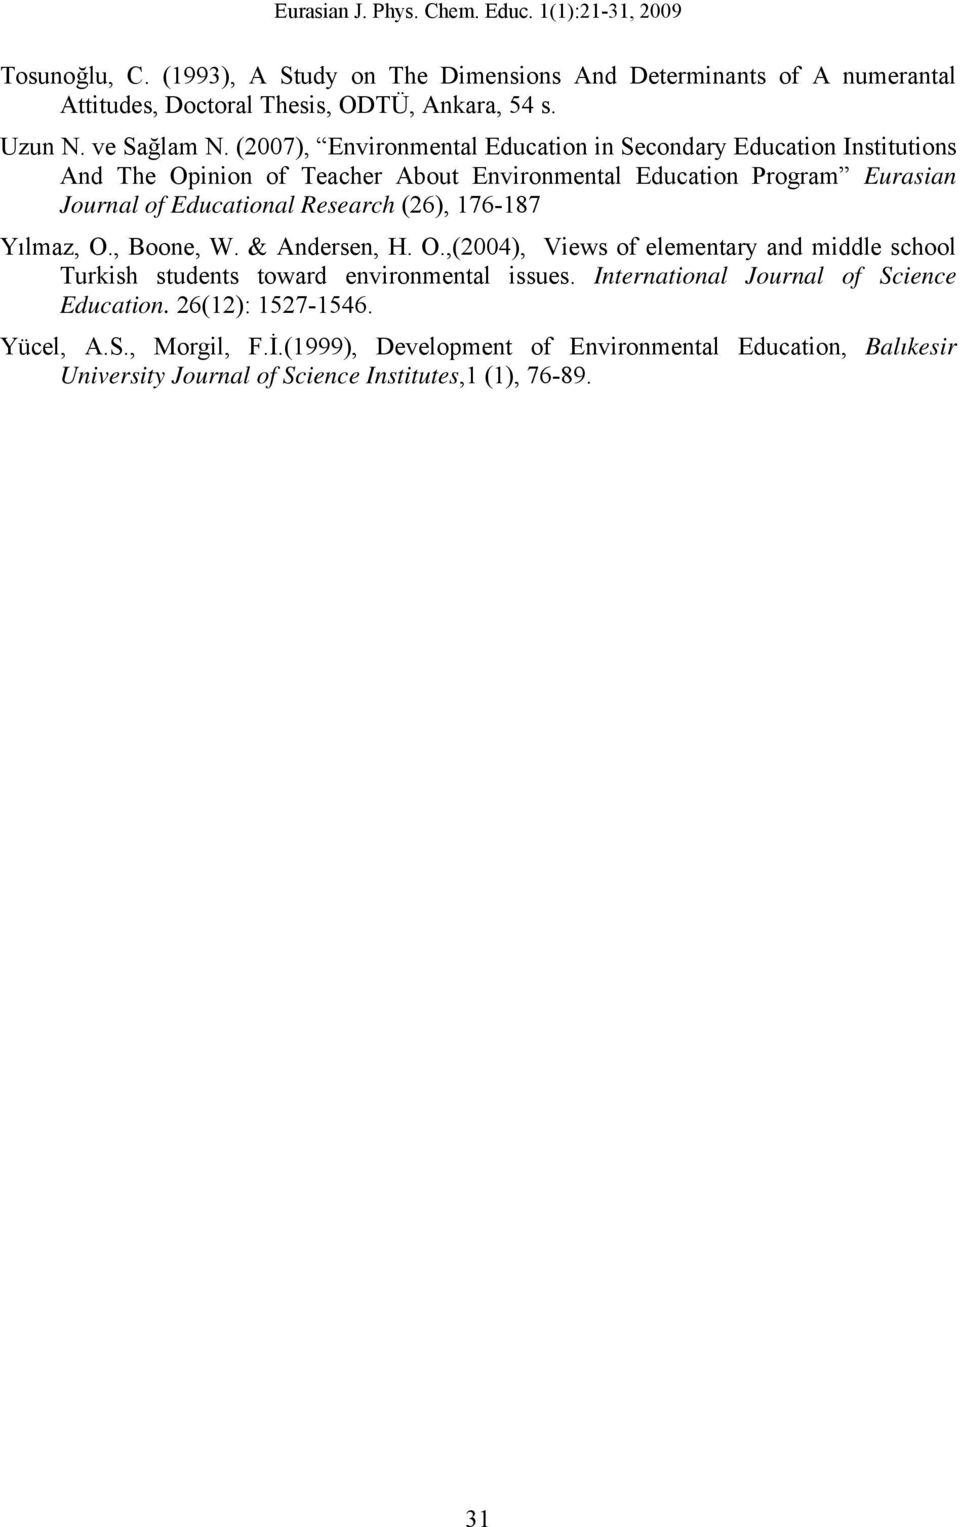 Research (26), 176-187 Yılmaz, O., Boone, W. & Andersen, H. O.,(2004), Views of elementary and middle school Turkish students toward environmental issues.